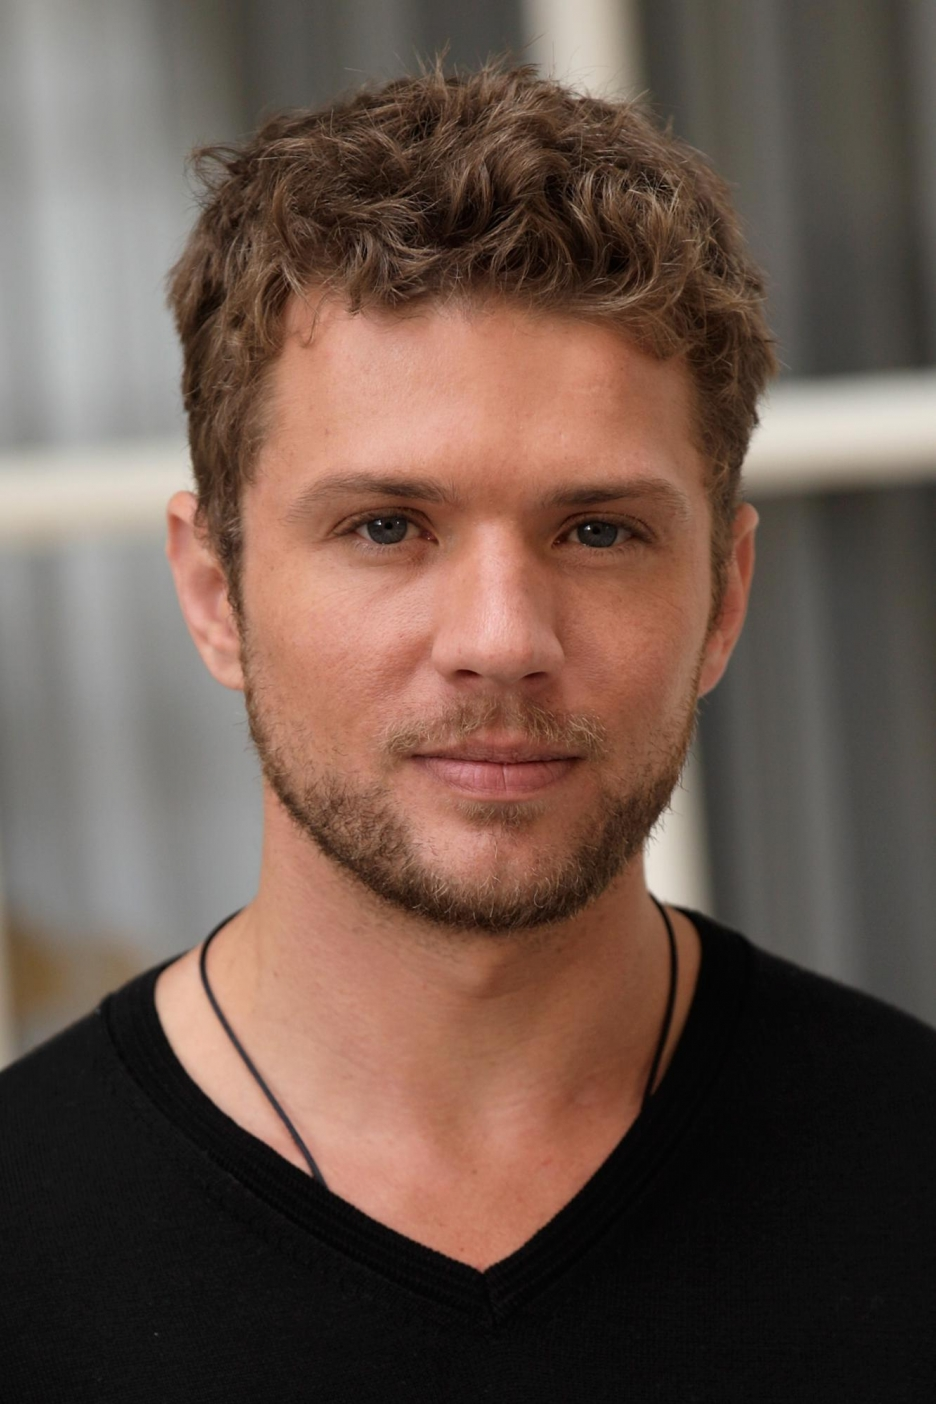 Image Hollywood Actor Ryan Phillippe Face Wallpaperg Pretty